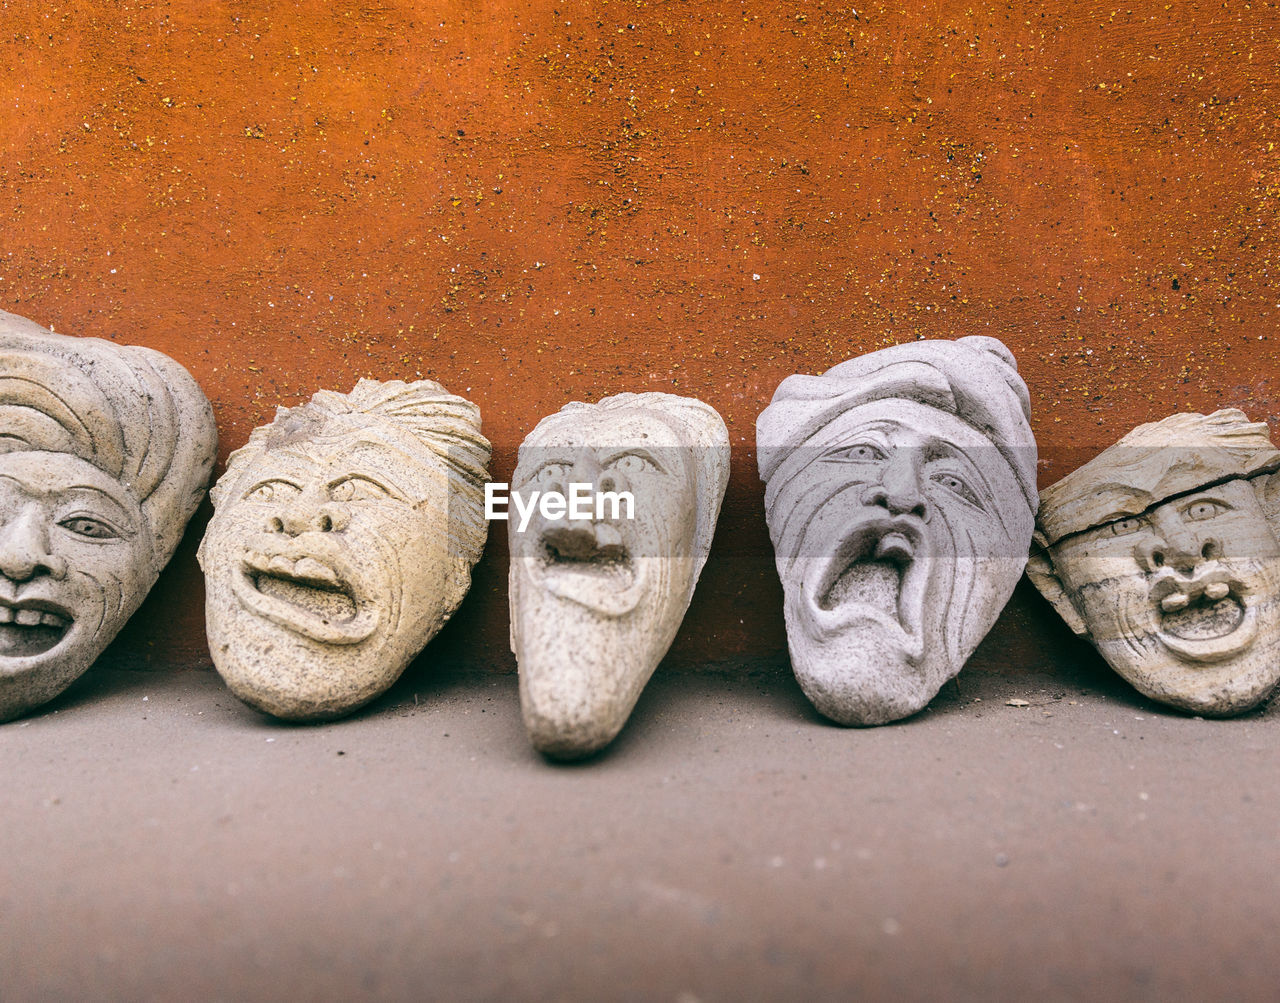 Close-up of human face carved on clay